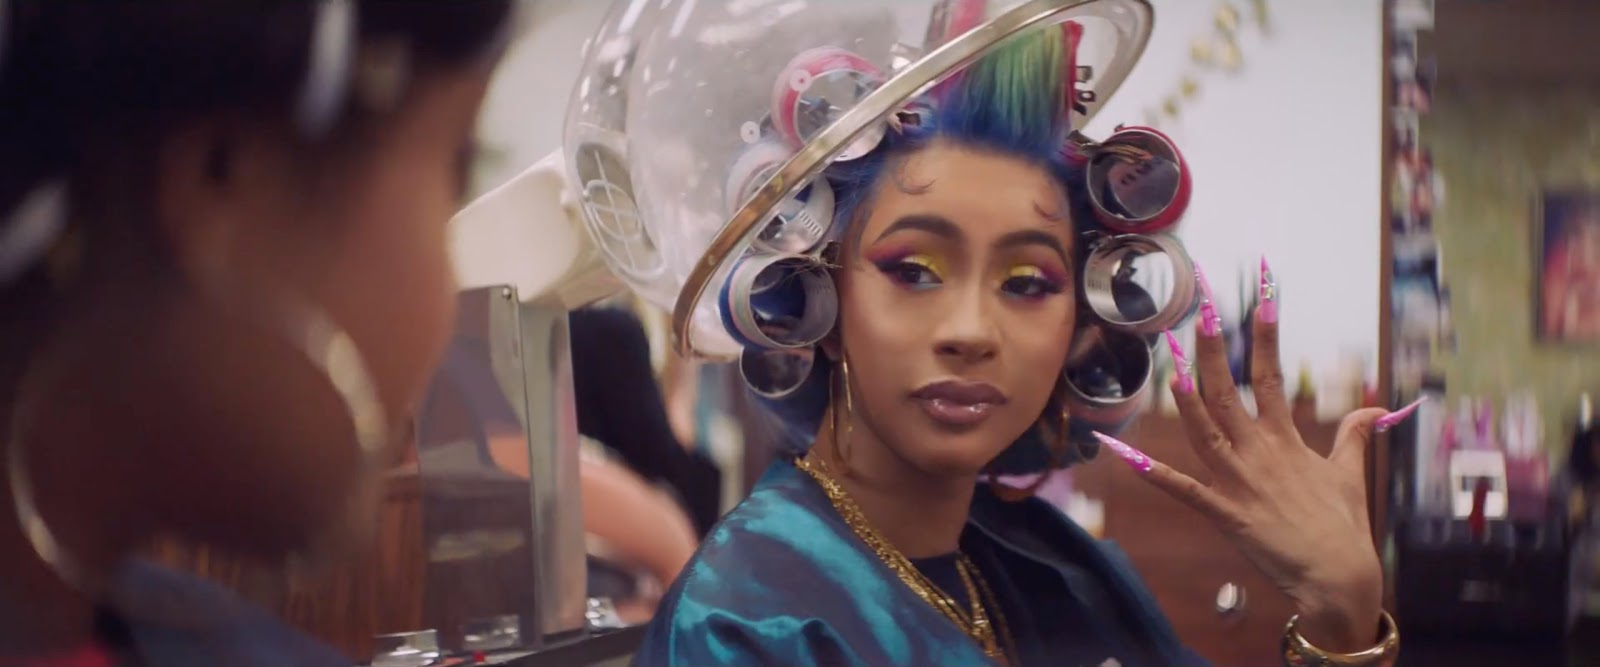 Cardi B Nails It In Latest Ad Campaign For Reebok Adstasher